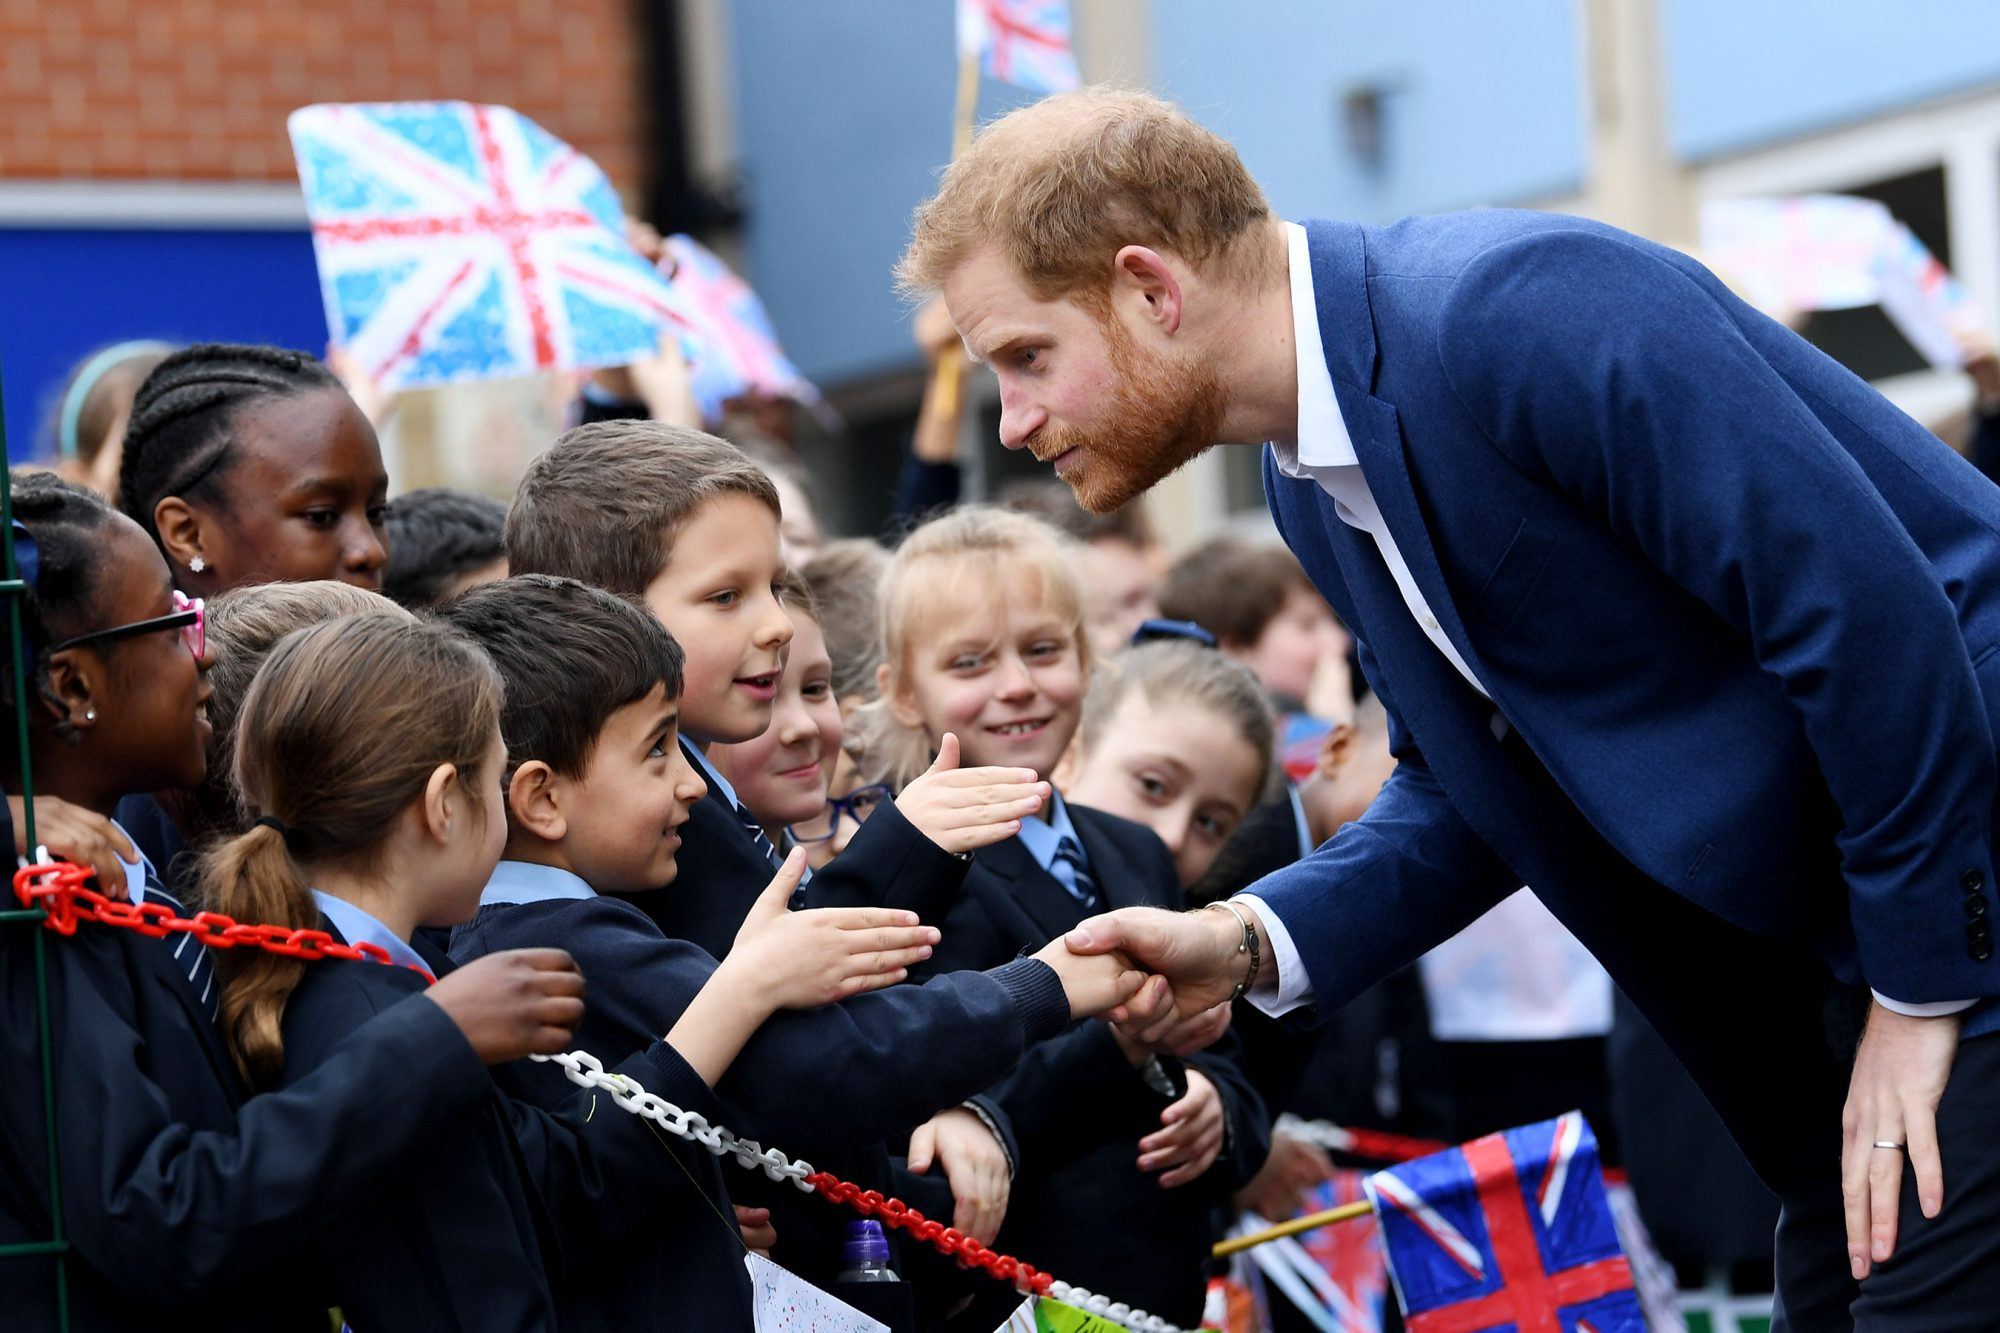 Prince Harry visits St Vincent's Catholic Primary School for Commonwealth Canopy and Woodland Trust Tree Planting ceremony, London, UK - 20 Mar 2019